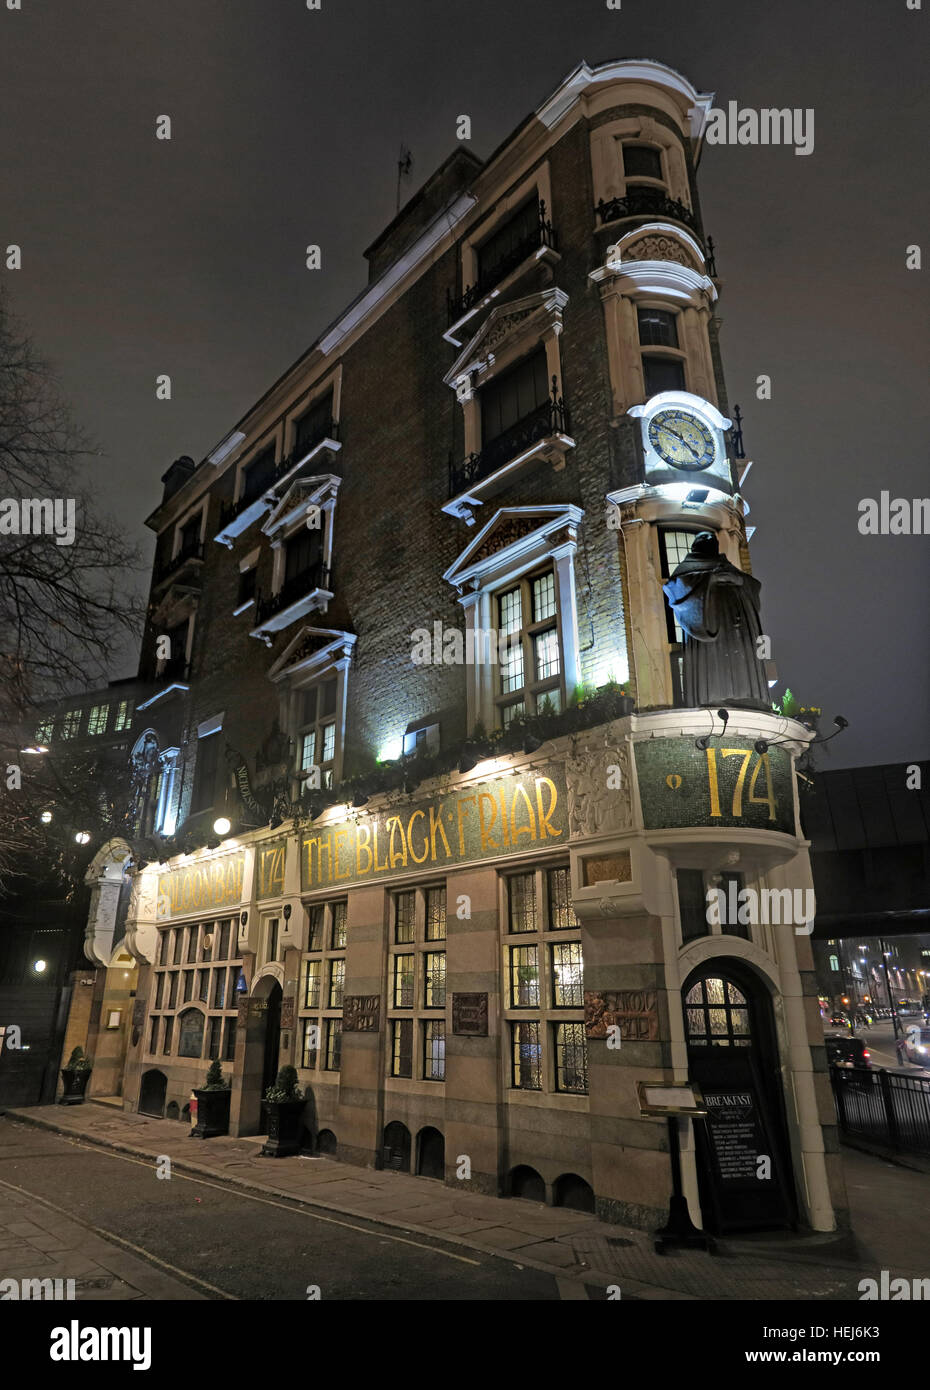 City Centre,City,Centre,dusk,pub,pubs,bars,bar,classic,CAMRA,real,ale,realale,real ale,art,deco,artdeco,art-deco,The Black Friar,at,night,dusk,drinking,beer,beers,gin,palace,gin palace,pano,panorama,classic,Henry Poole,Herbert Fuller-Clark,Art Nouveau,GoTonySmith,@HotpixUK,Tony,Smith,UK,GB,Great,Britain,United,Kingdom,English,British,England,London,Greater,problem,with,problem with,issue with,LDN,City,Centre,cities,Urban,Urbanist,town,infrastructure,transport,tour,tourism,tourists,urban,attraction,attractions,pubs,bars,of,London,classic,tourist,attraction,travel,vacation,Buy Pictures of,Buy Images Of,Images of,Stock Images,Tony Smith,United Kingdom,Great Britain,Greater London,British Isles,City Centre,Pubs Of London,must see